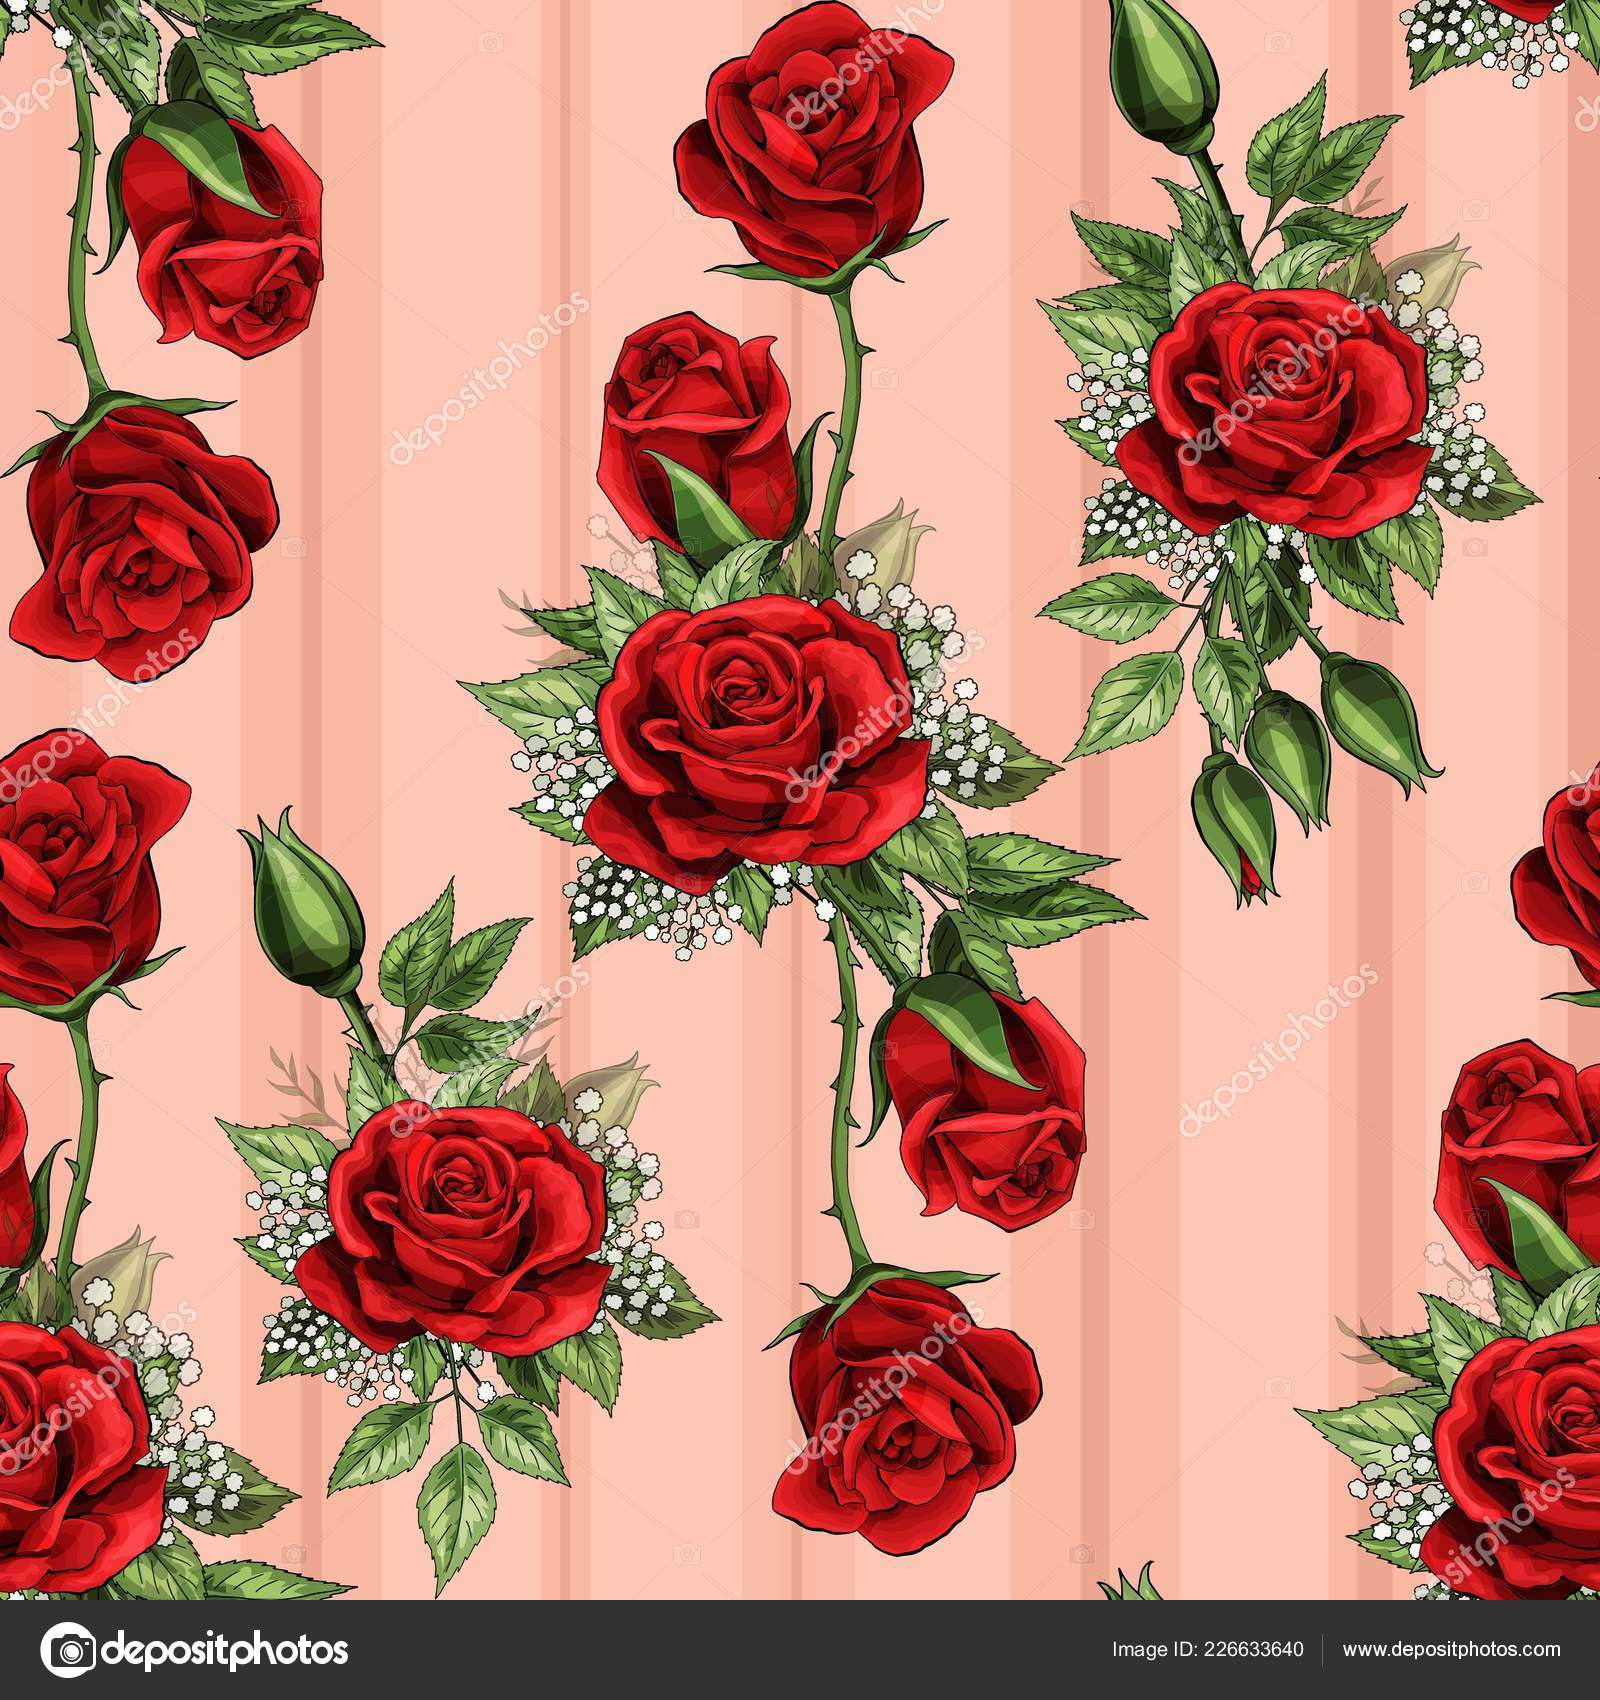 Red Rose Flower Bouquet Spreads Creeper Elements Seamless Pattern Wallpaper Stock Vector